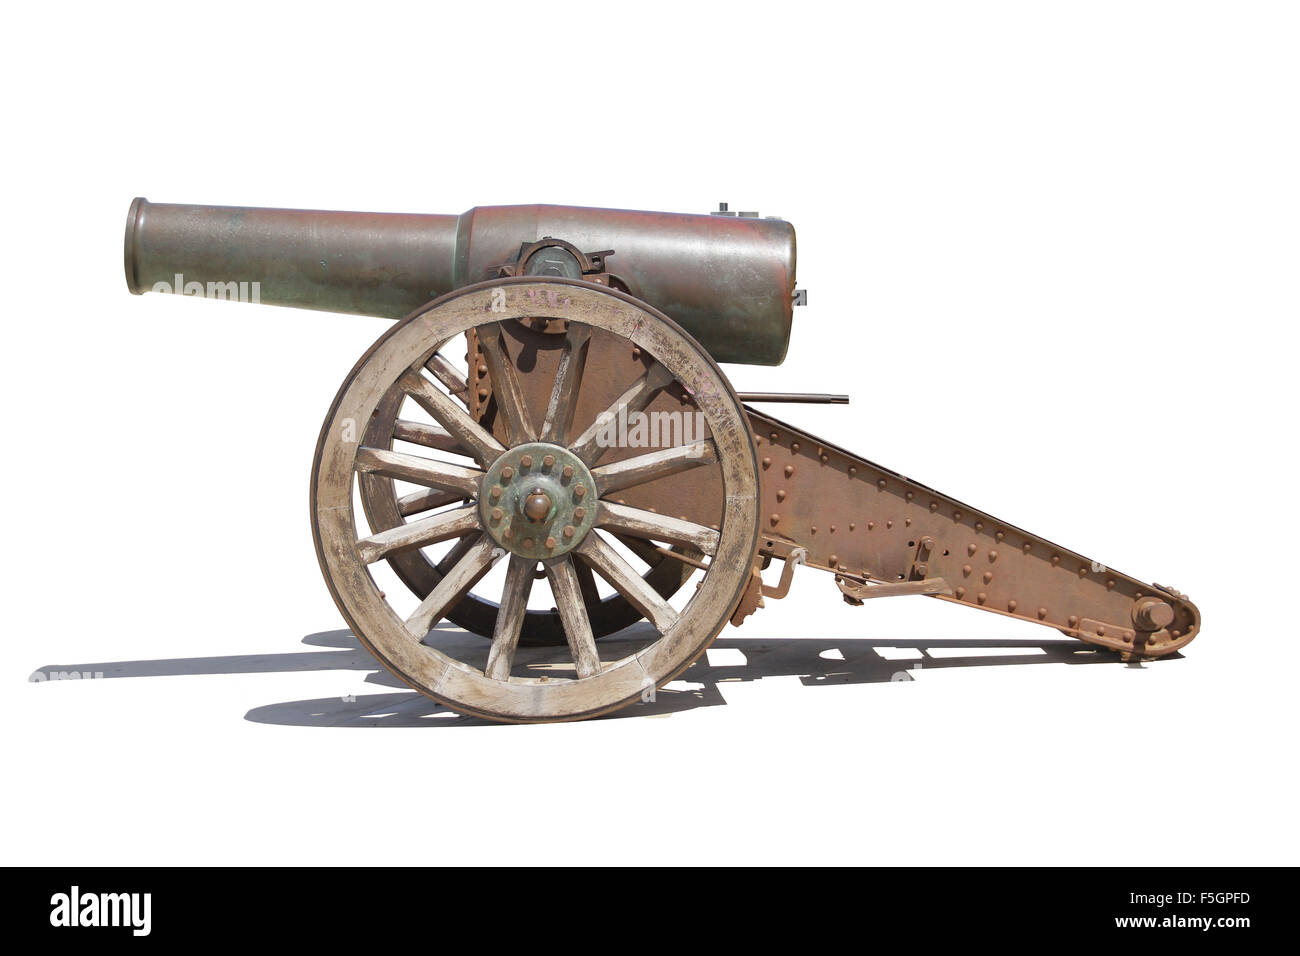 Old iron Spanish war canon with a carriage. - Stock Image